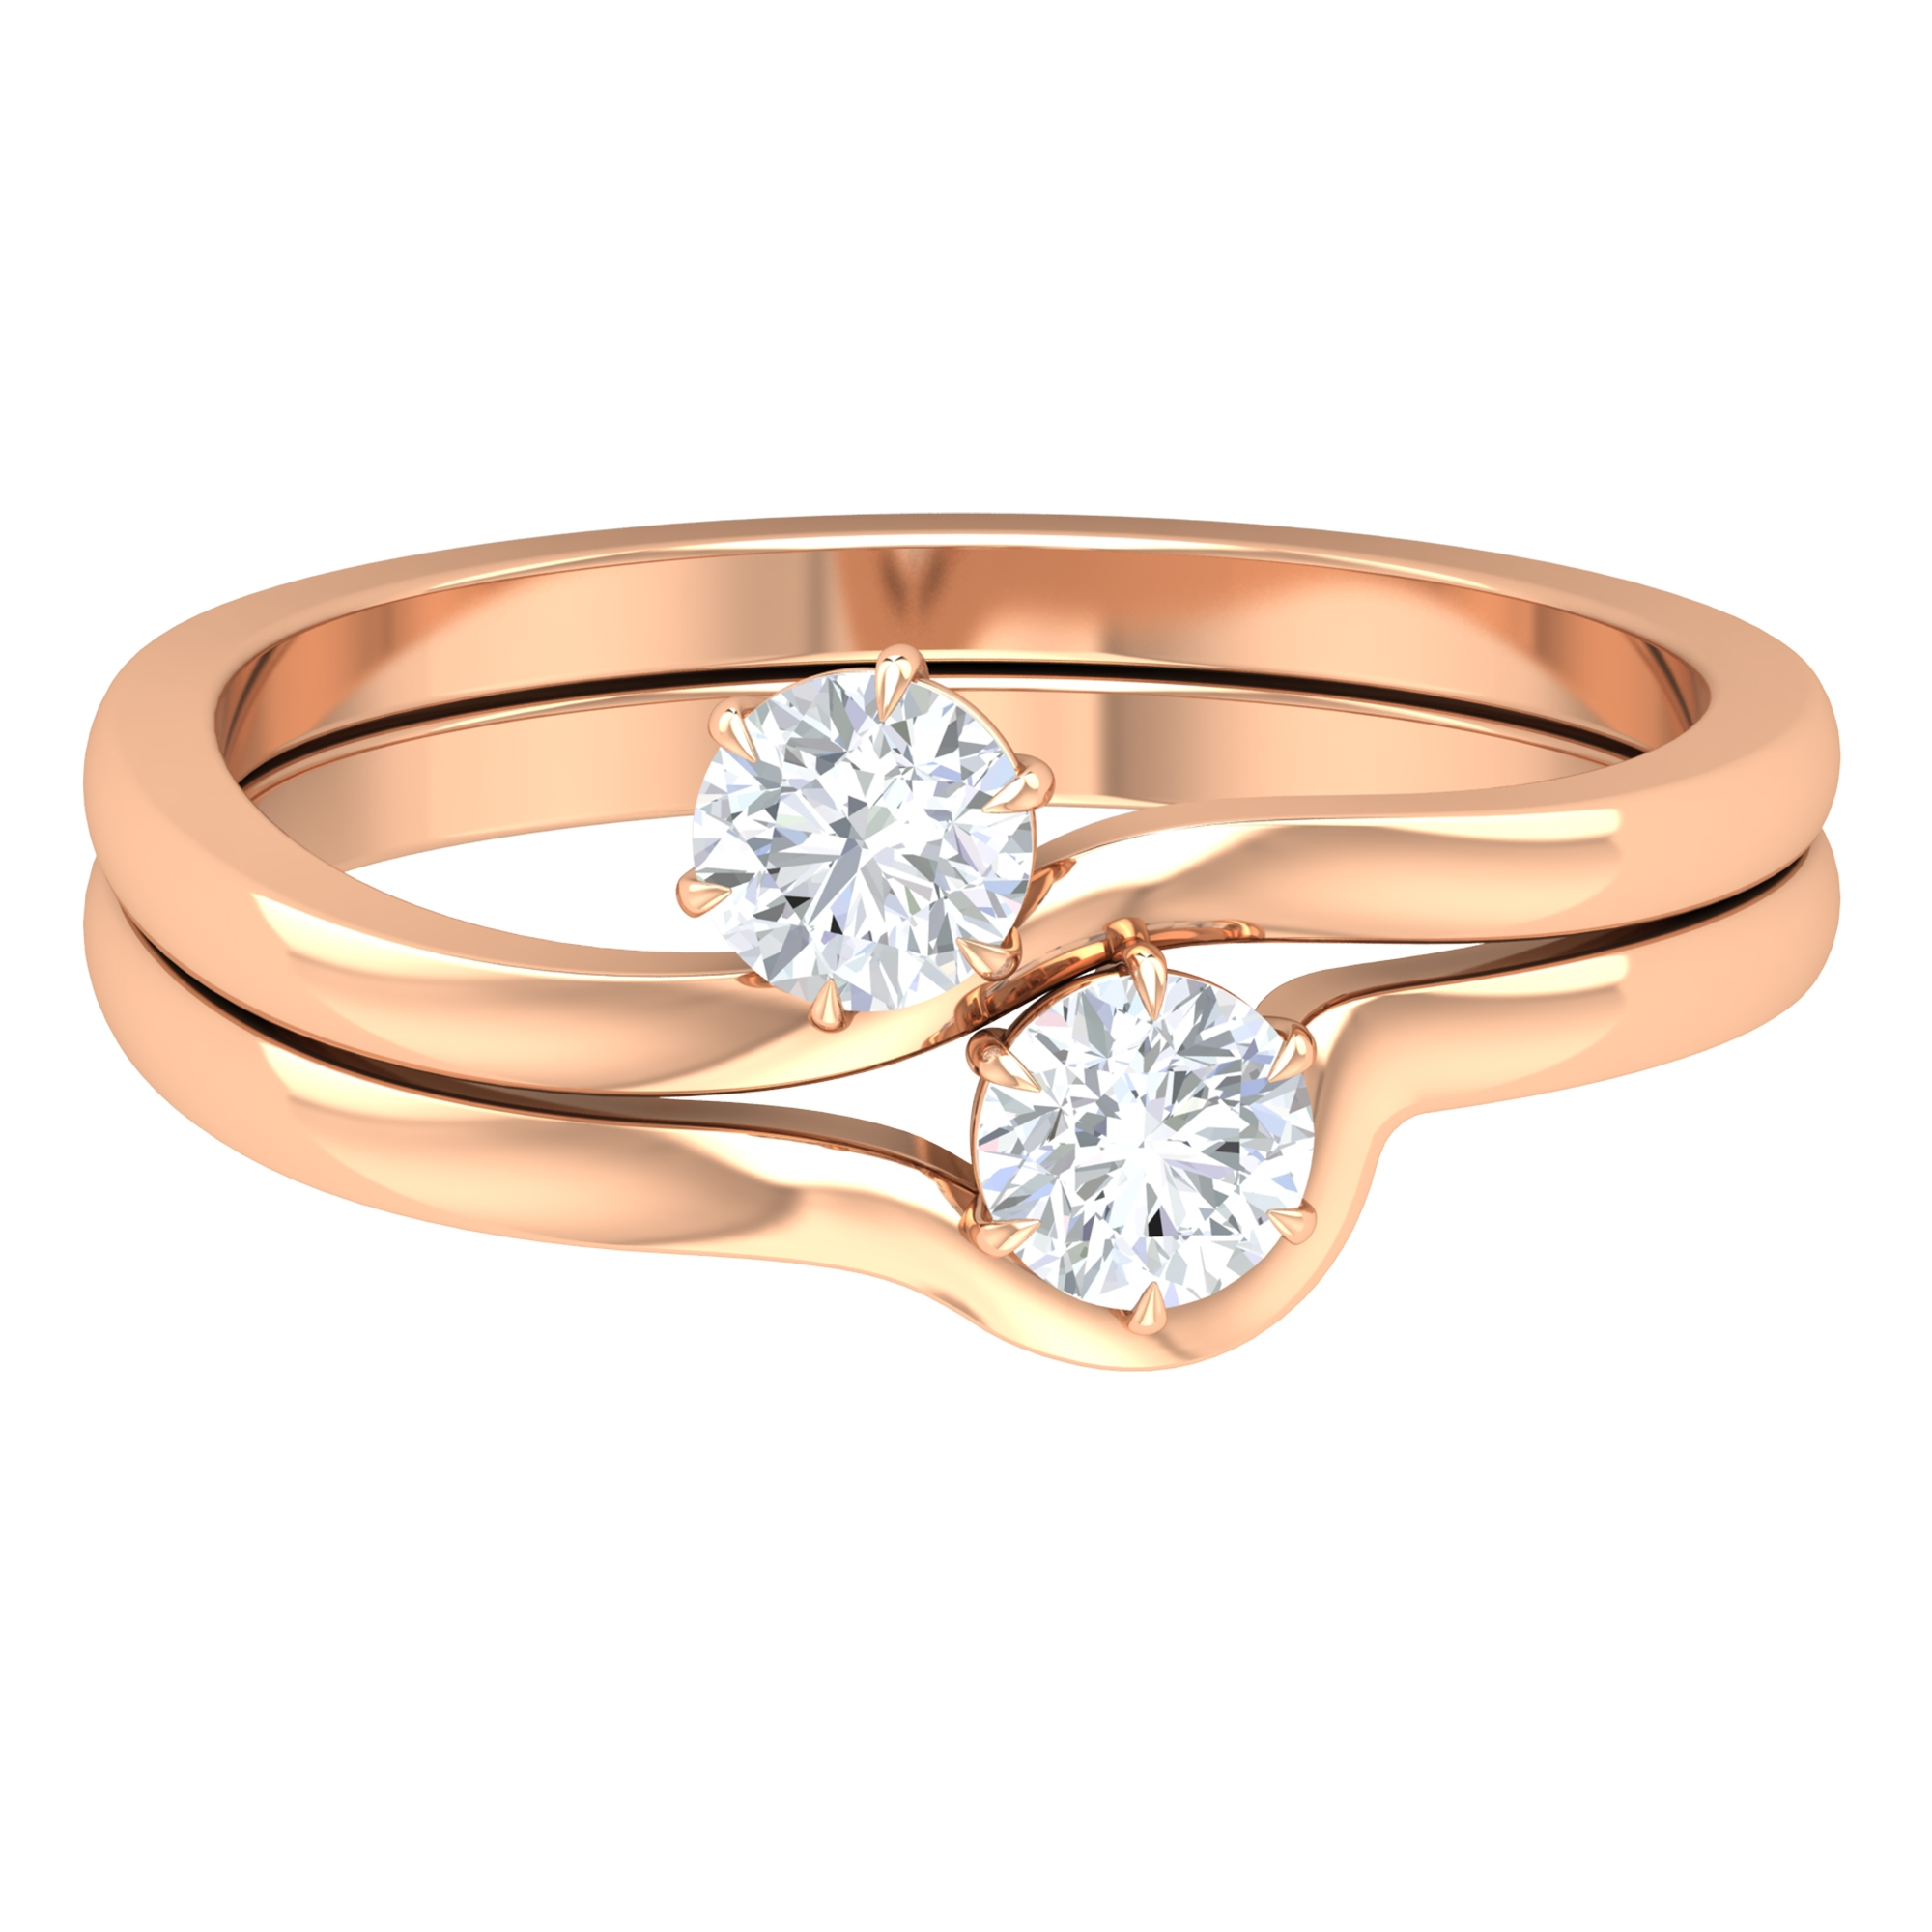 1/2 CT Round Shape Diamond Solitaire Ring Set in 6 Claw Prong Setting